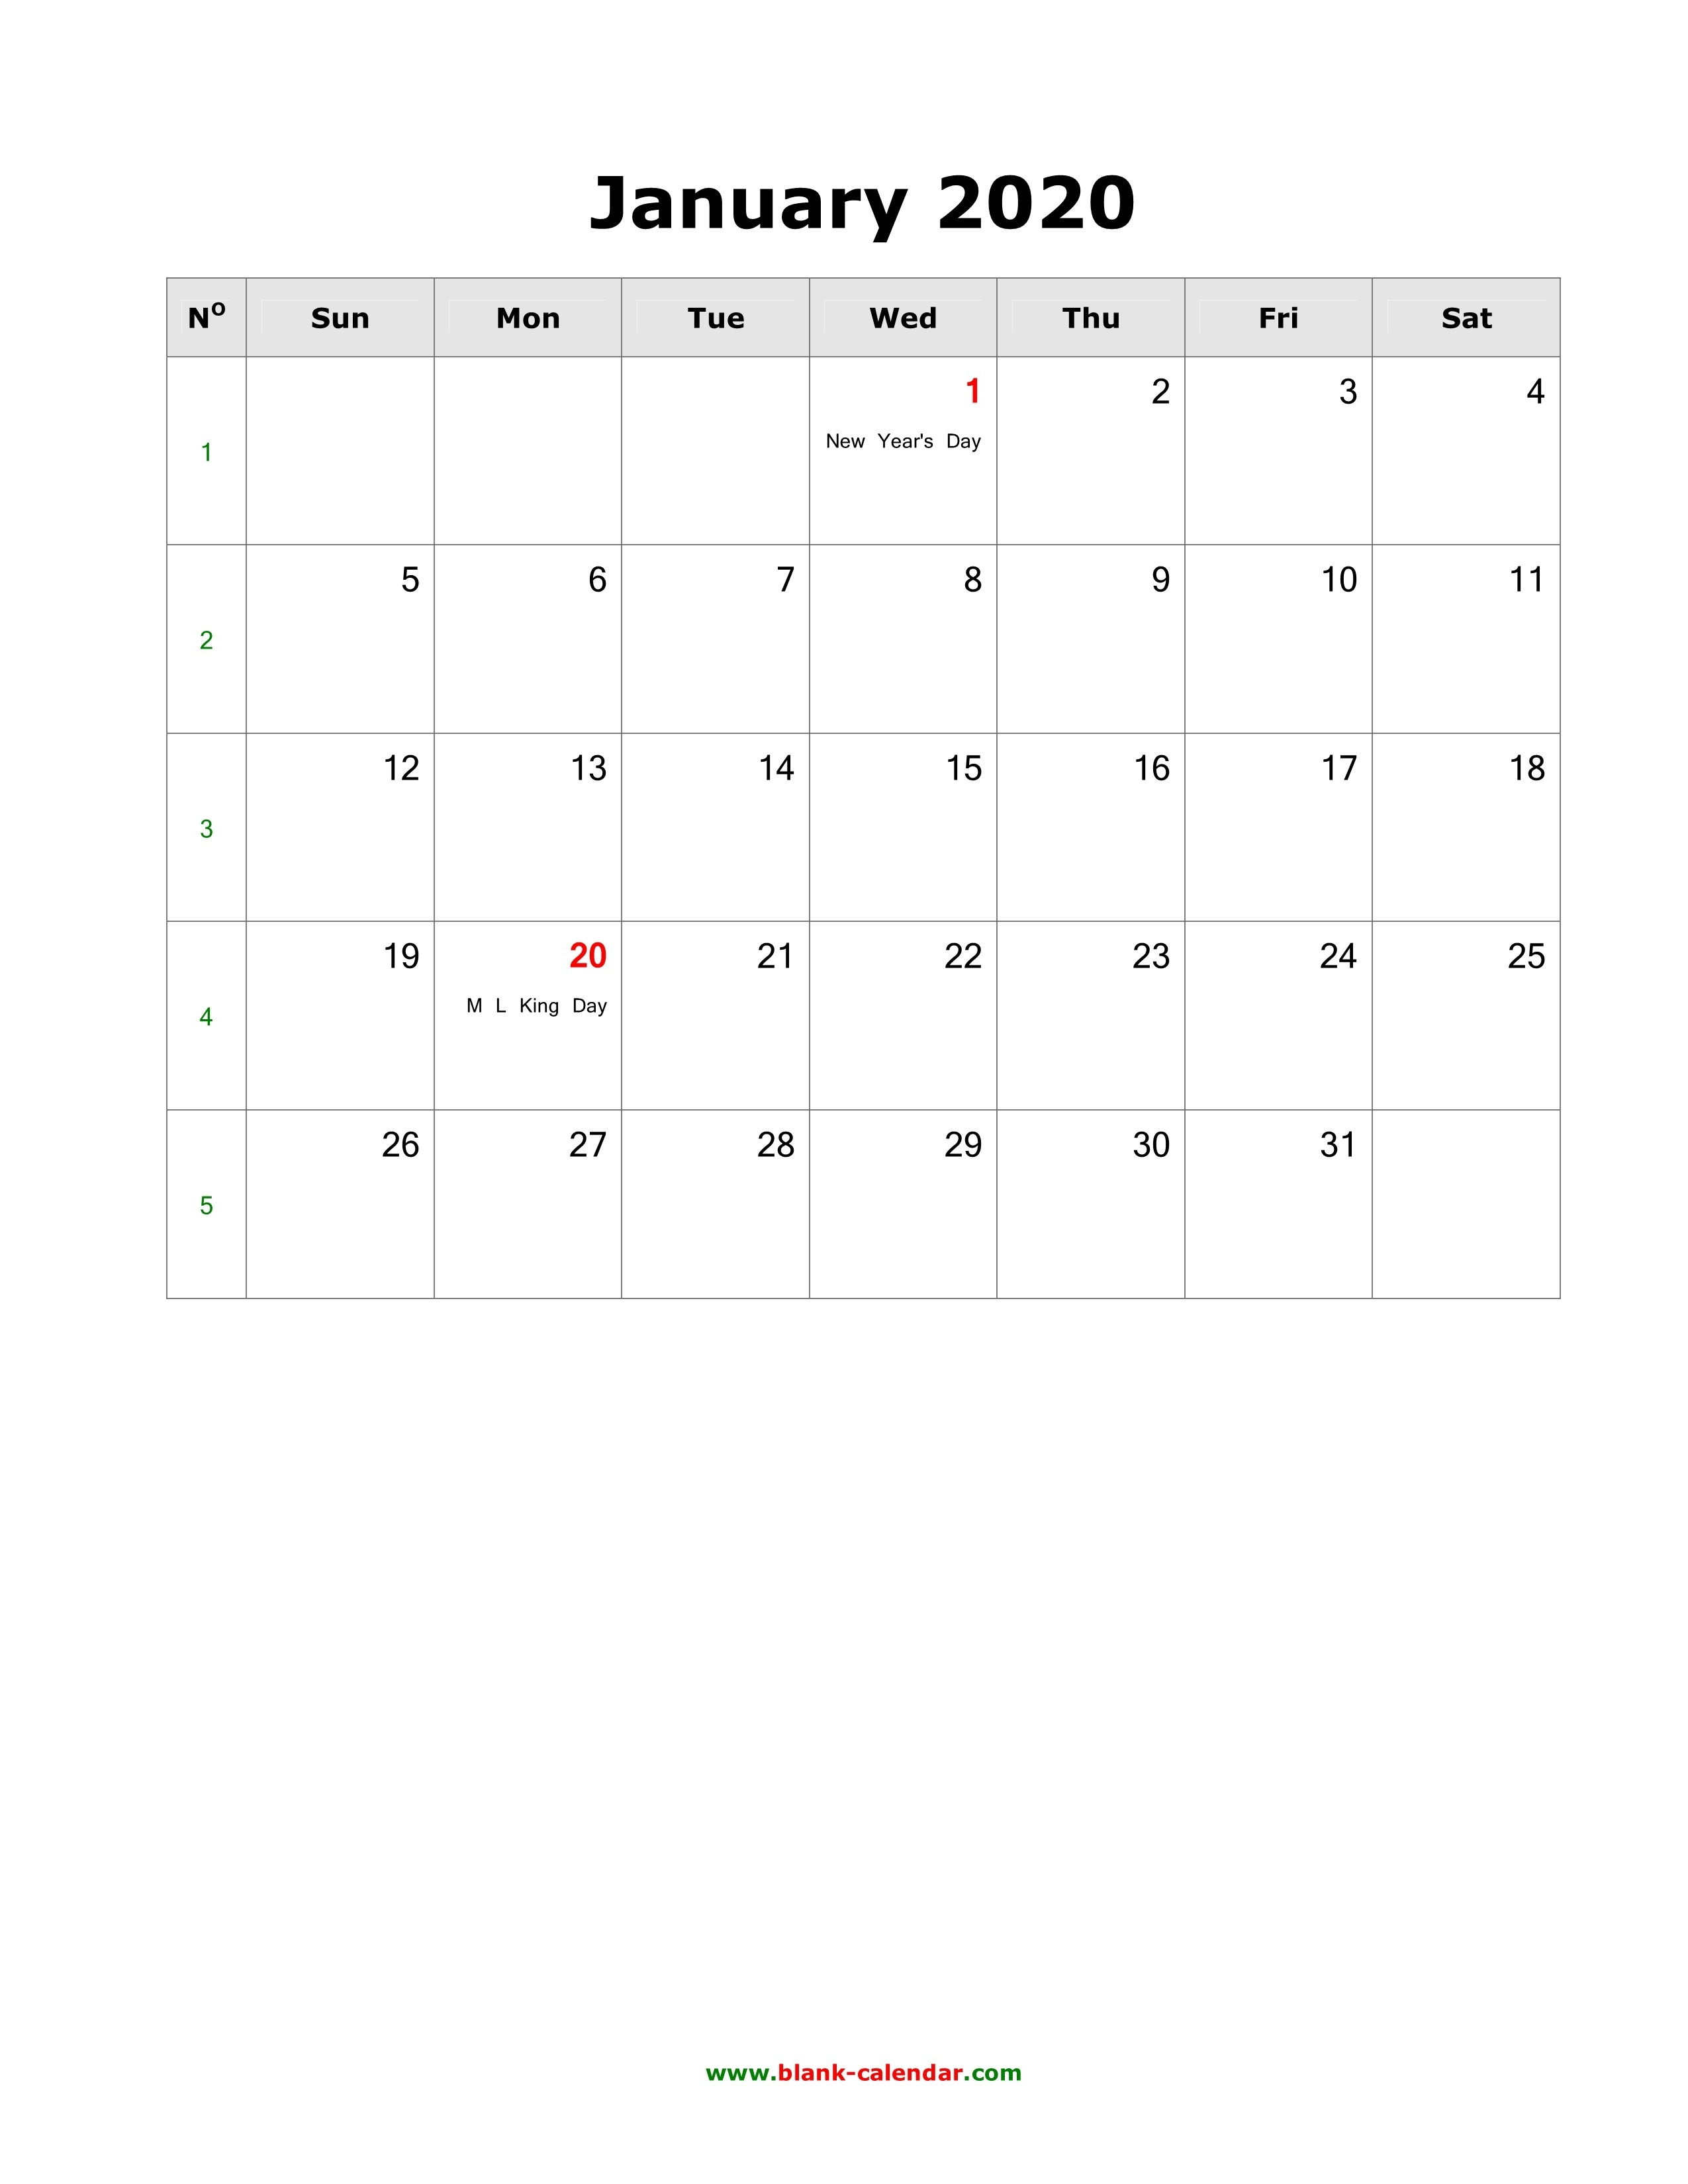 Download Blank Calendar 2020 With Us Holidays (12 Pages, One-Monday To Sunday Blank Calendar 2020 With Holidays